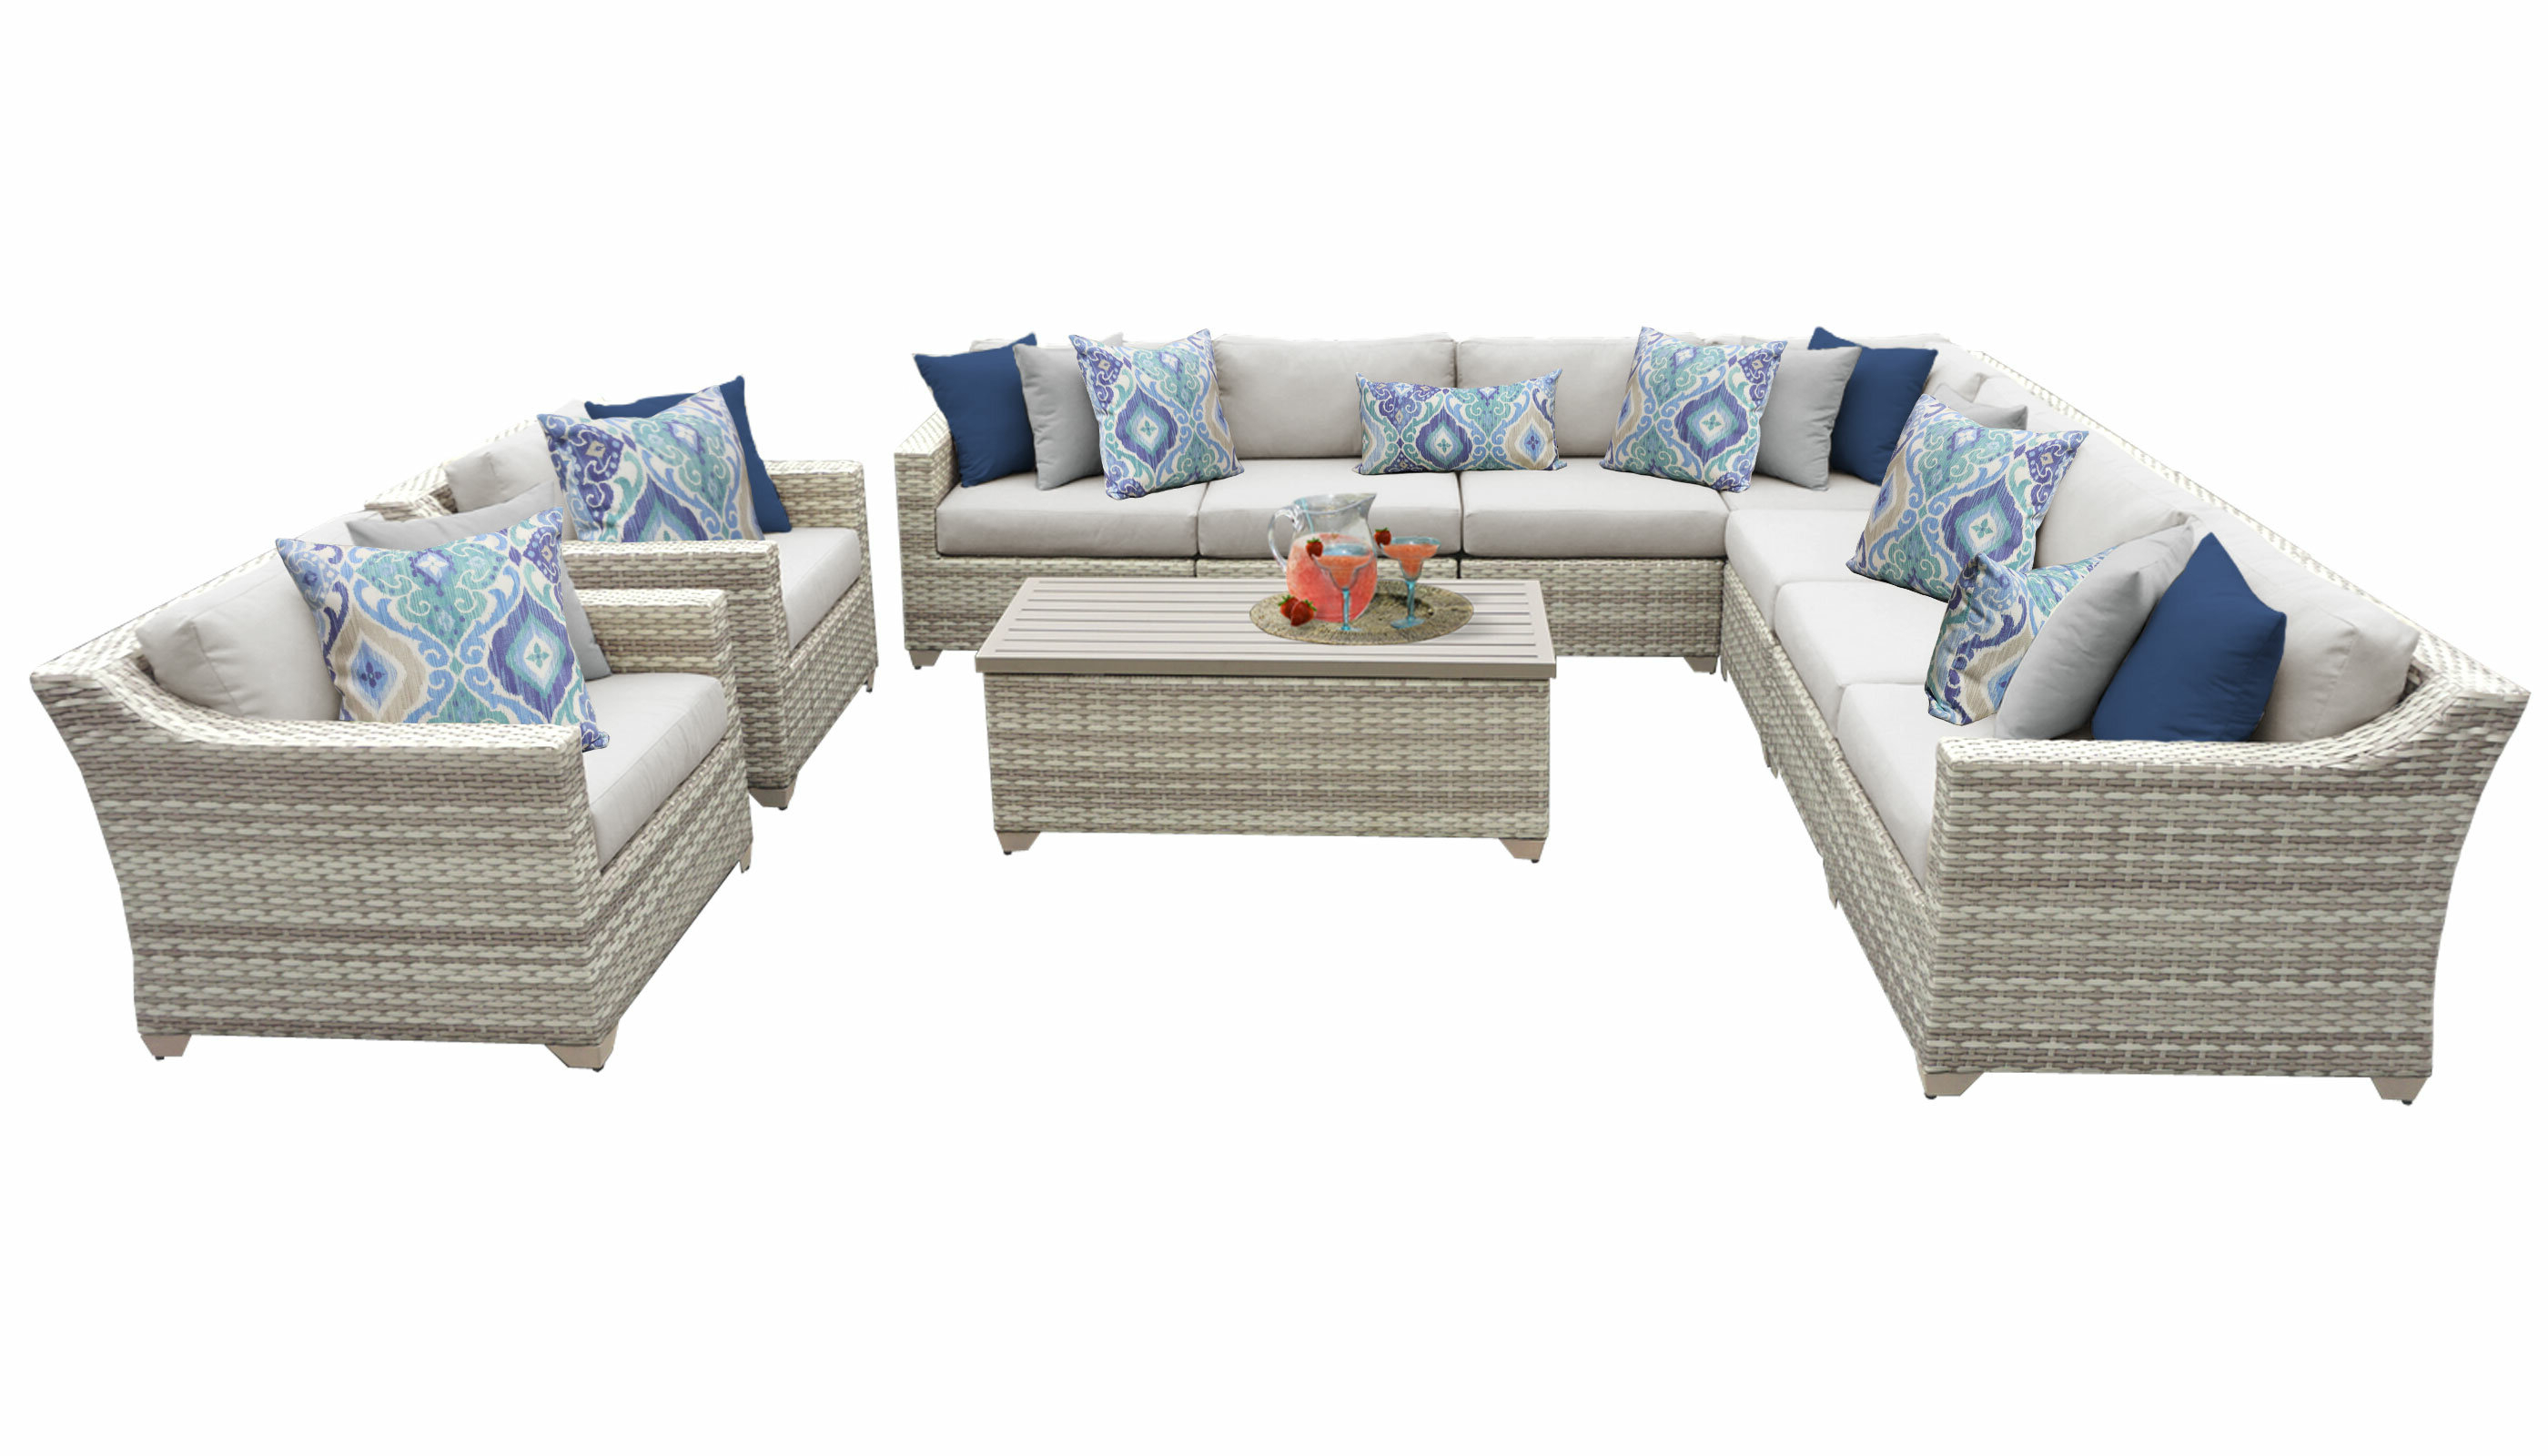 Well Liked Falmouth 10 Piece Sectional Seating Group With Cushions Intended For Falmouth Patio Sofas With Cushions (View 20 of 20)